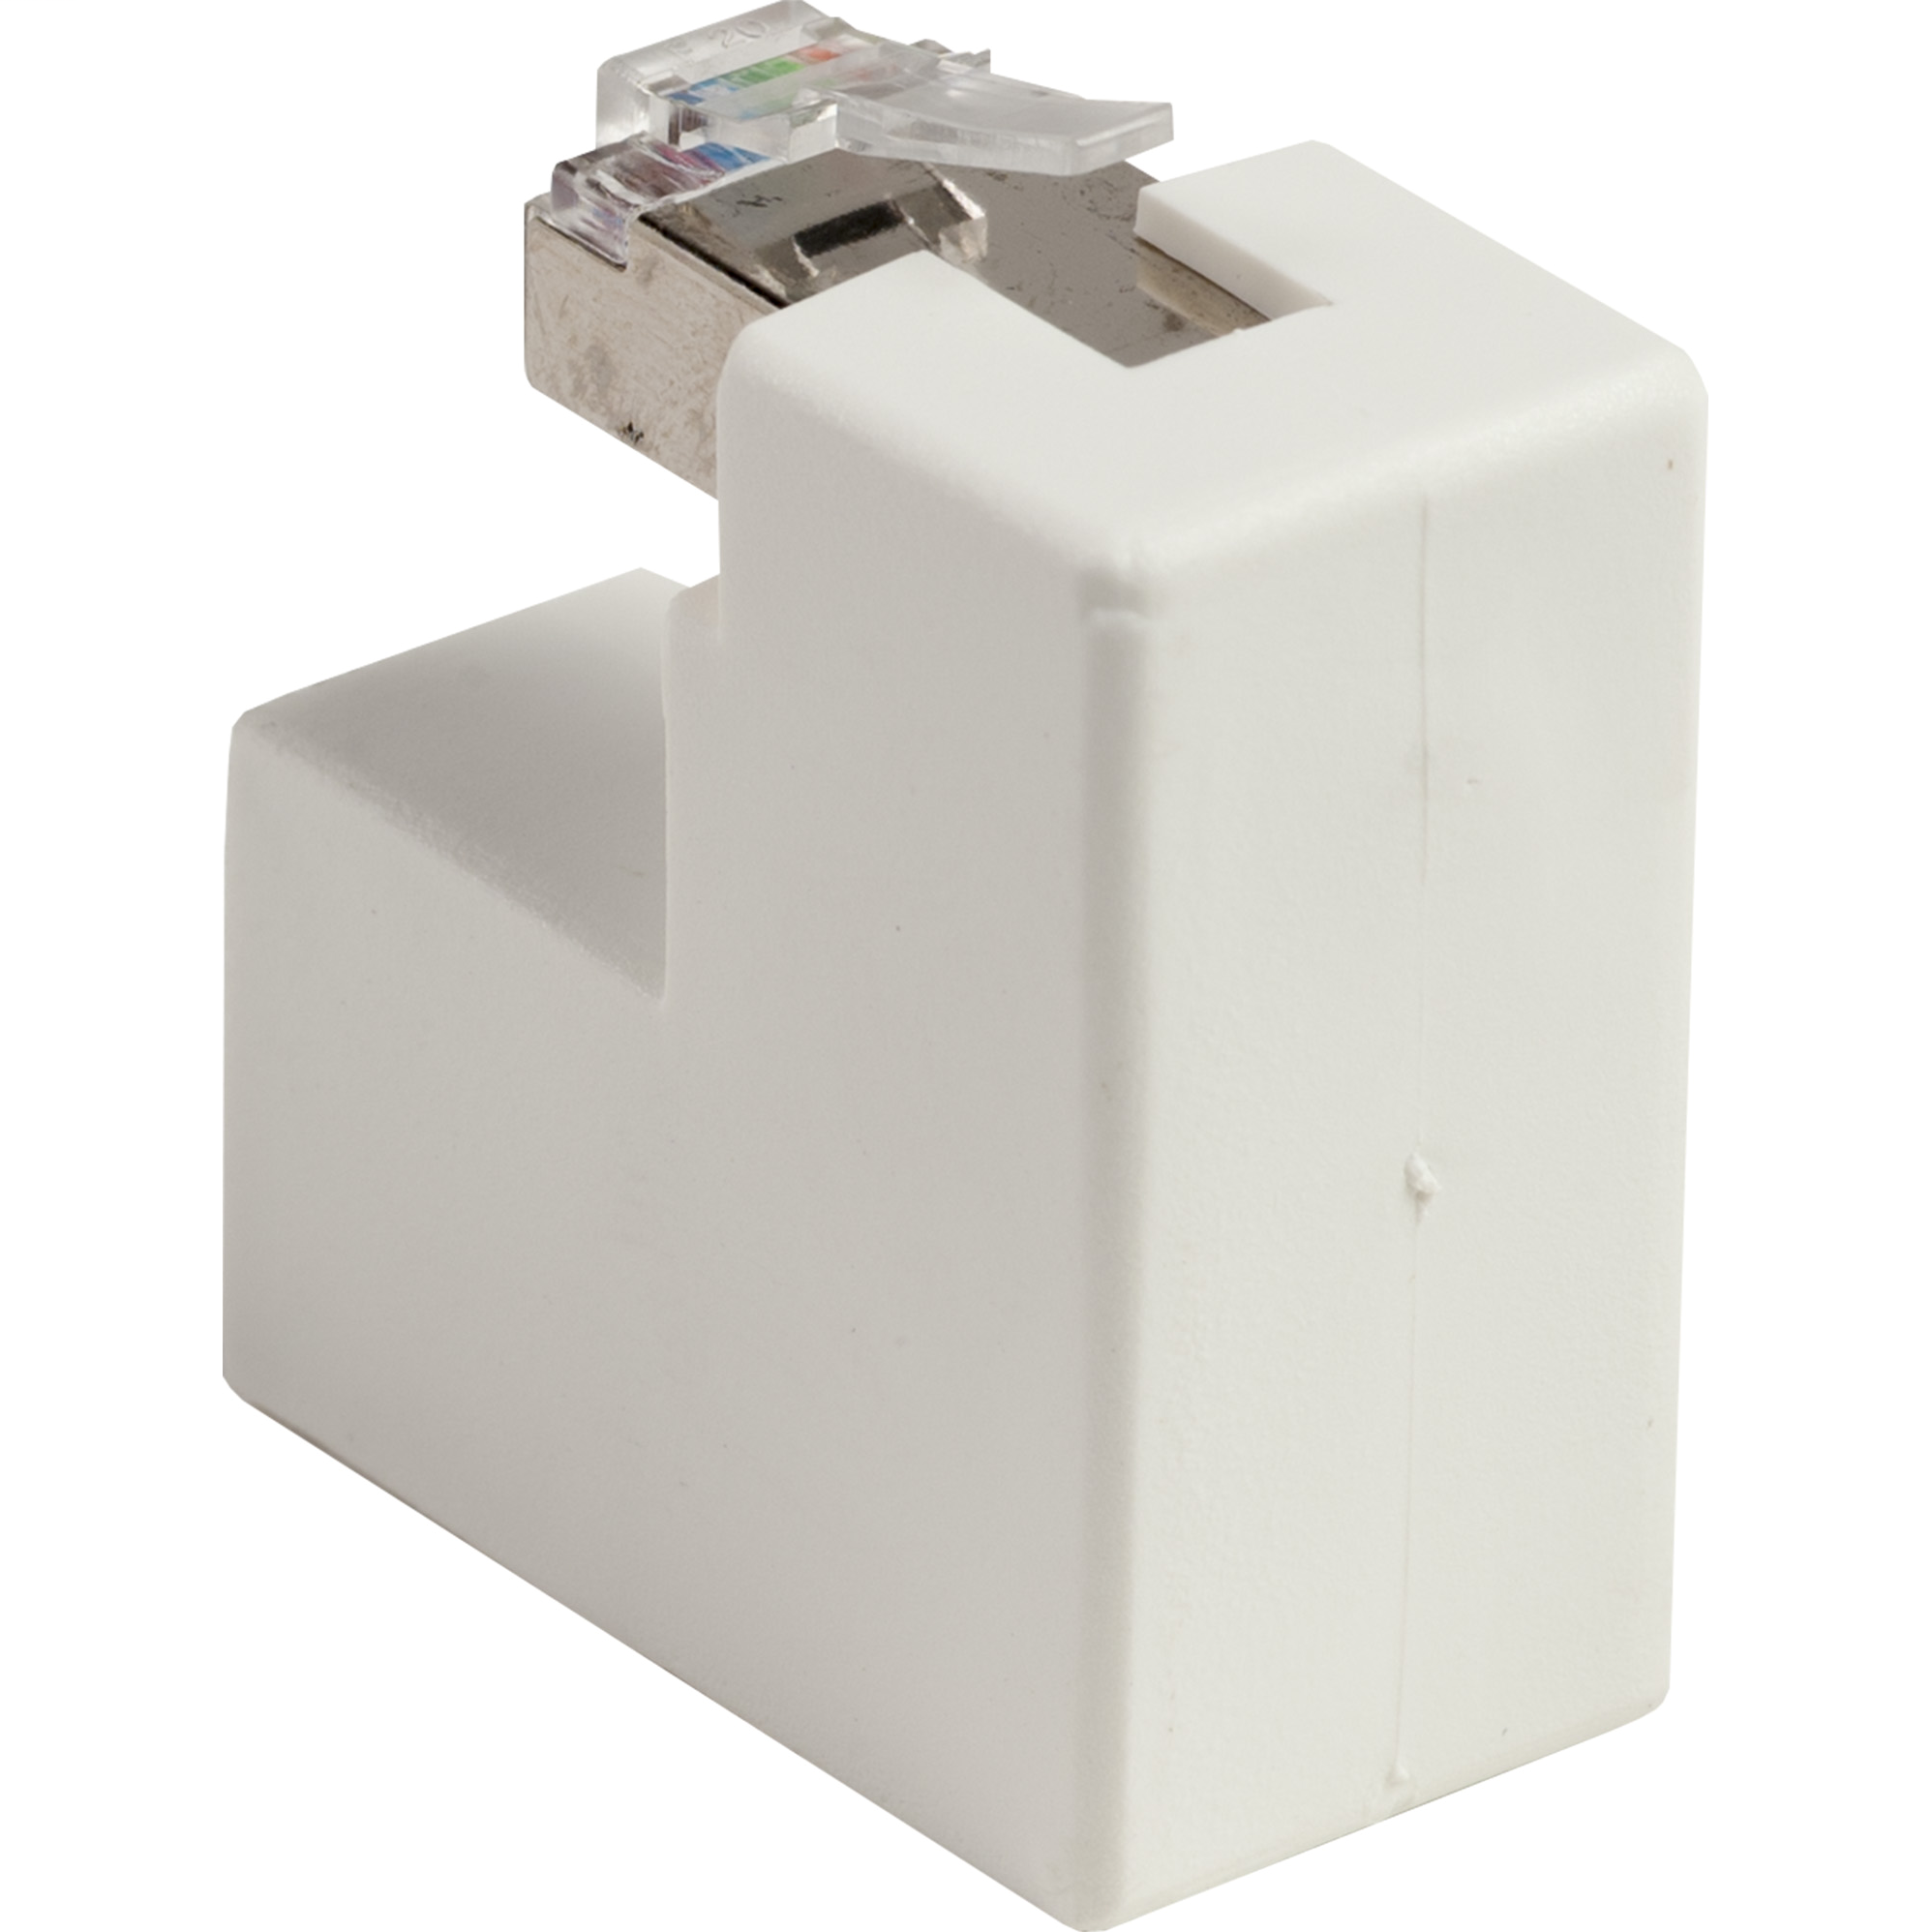 SQUARE D 180° ethernet connection for shielded twisted pair cables, TeSys T